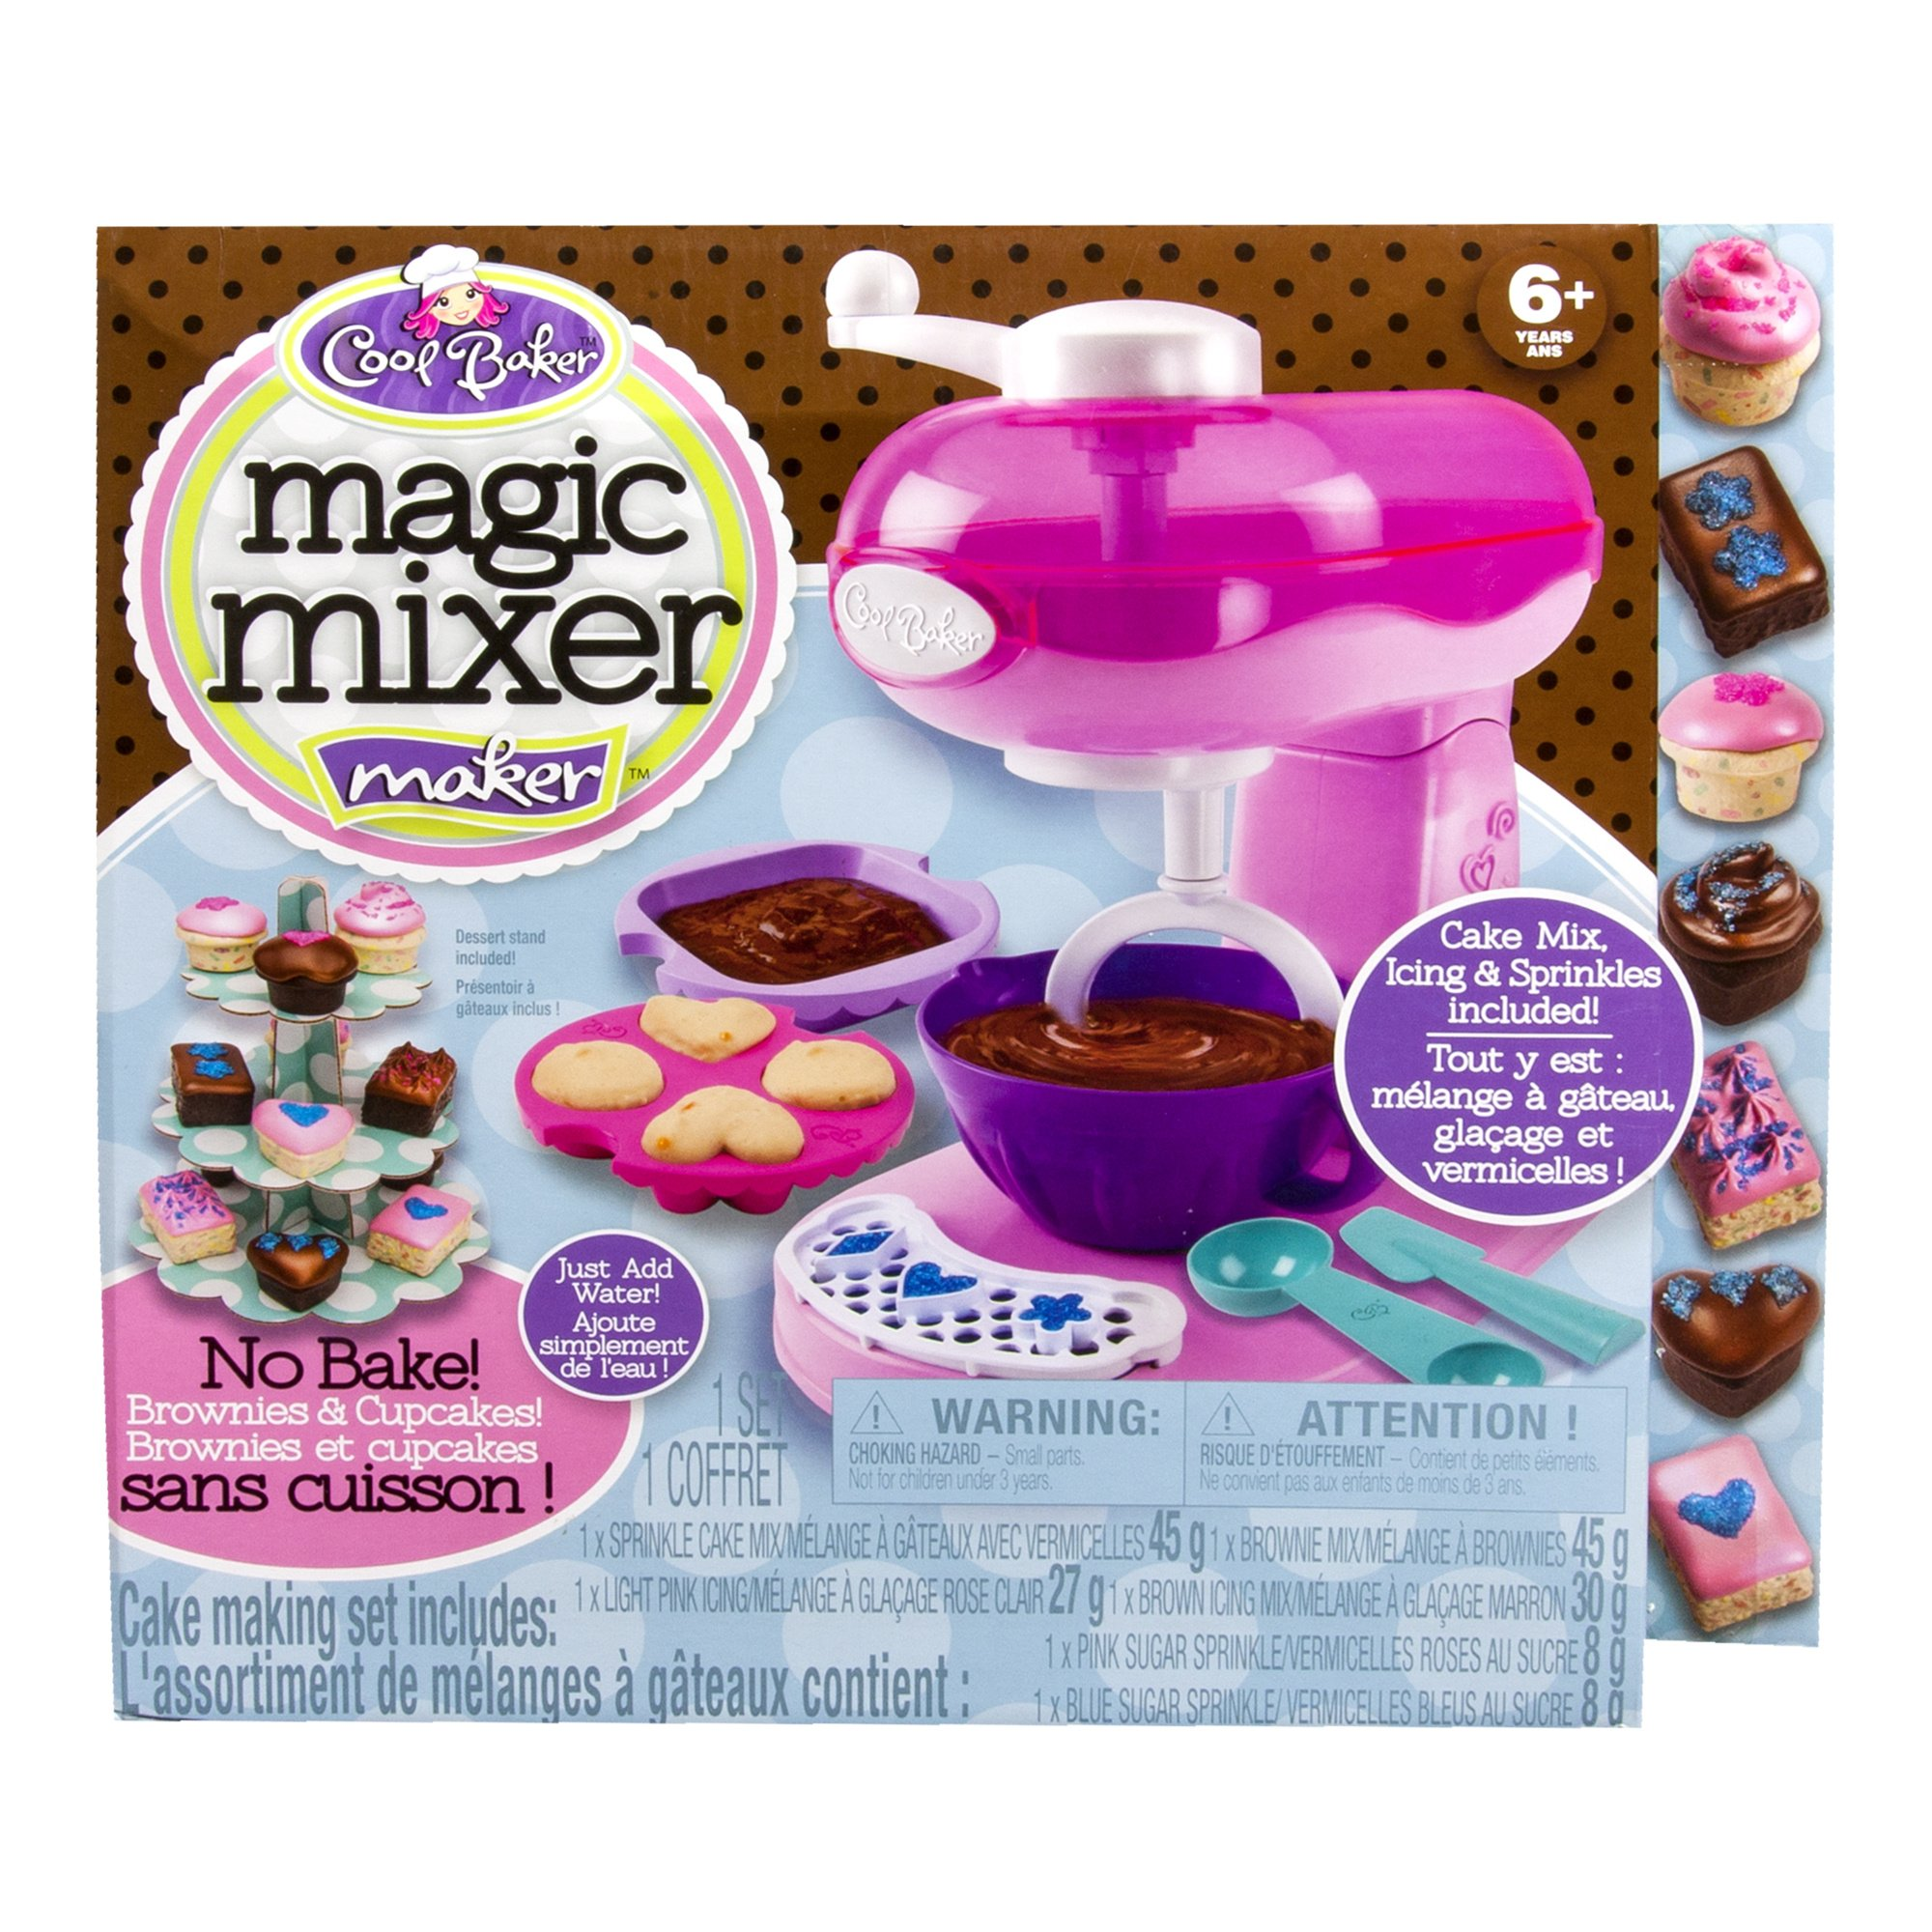 Cool Baker Magic Mixer Maker - Pink by Cool Baker (Image #12)